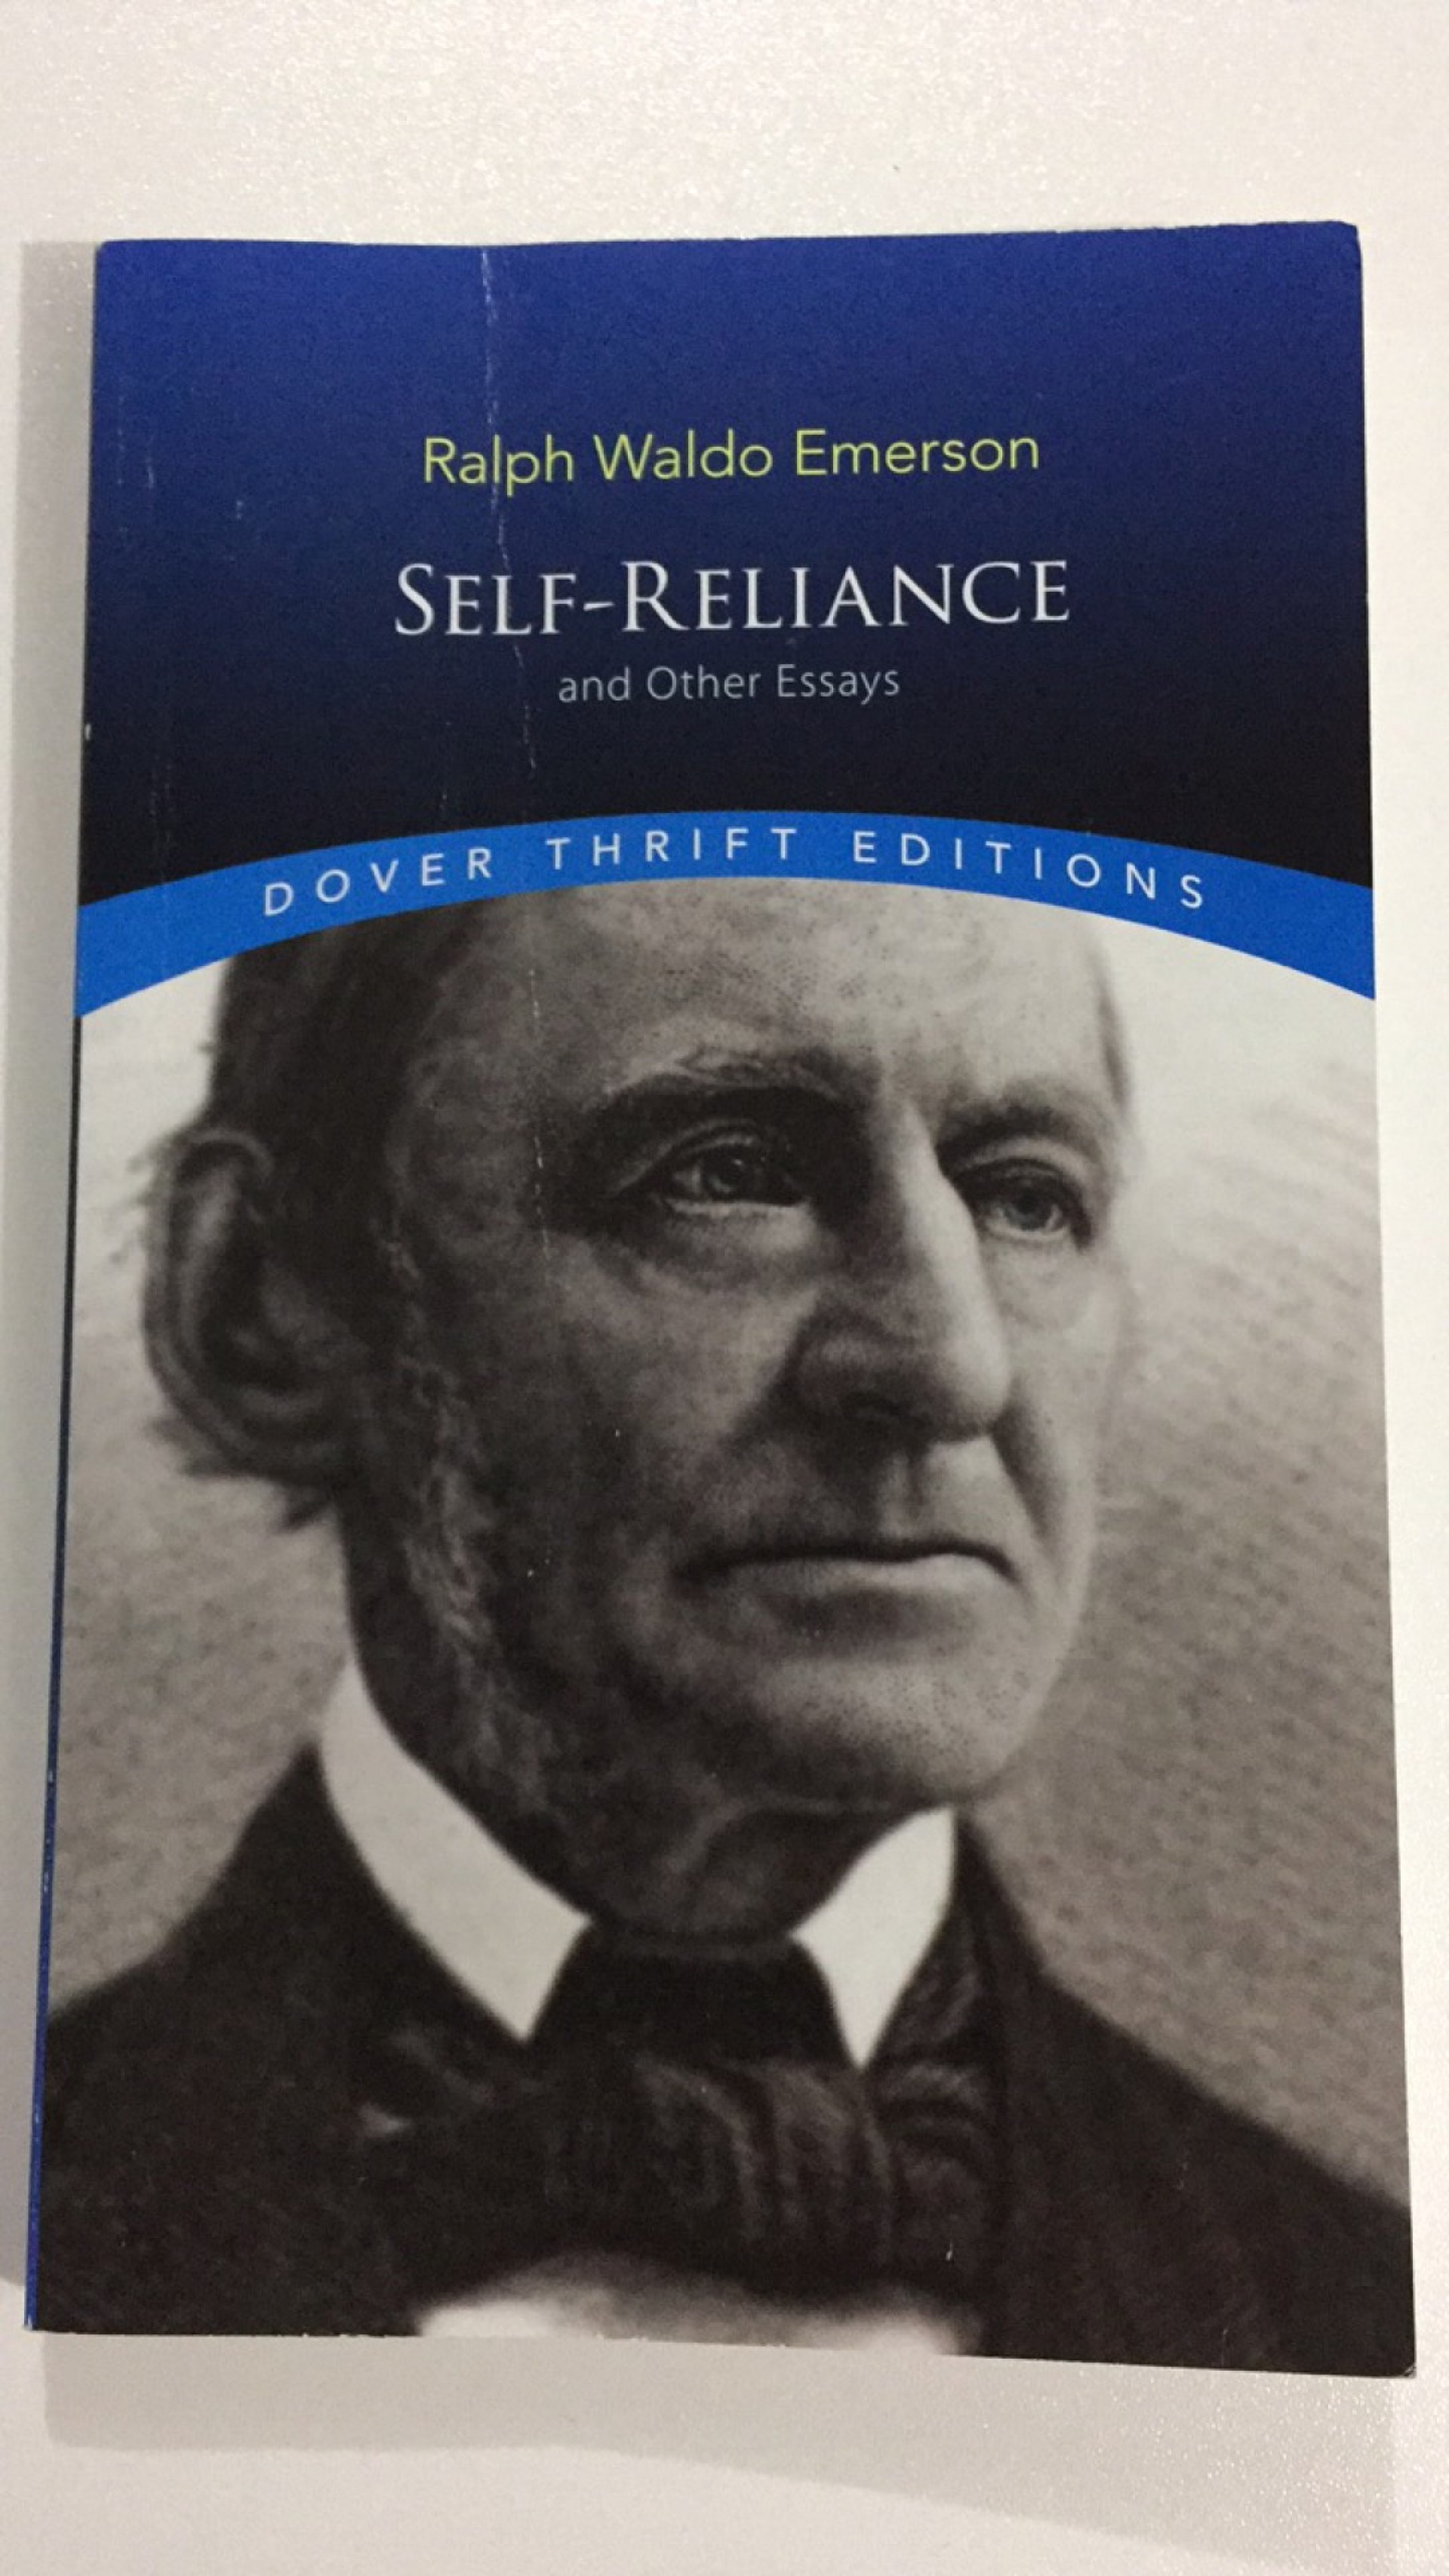 003 Self Reliance And Other Essays Essay Example By Ralph Waldo Emerson Formidable Ekşi Self-reliance (dover Thrift Editions) Pdf Epub 1920